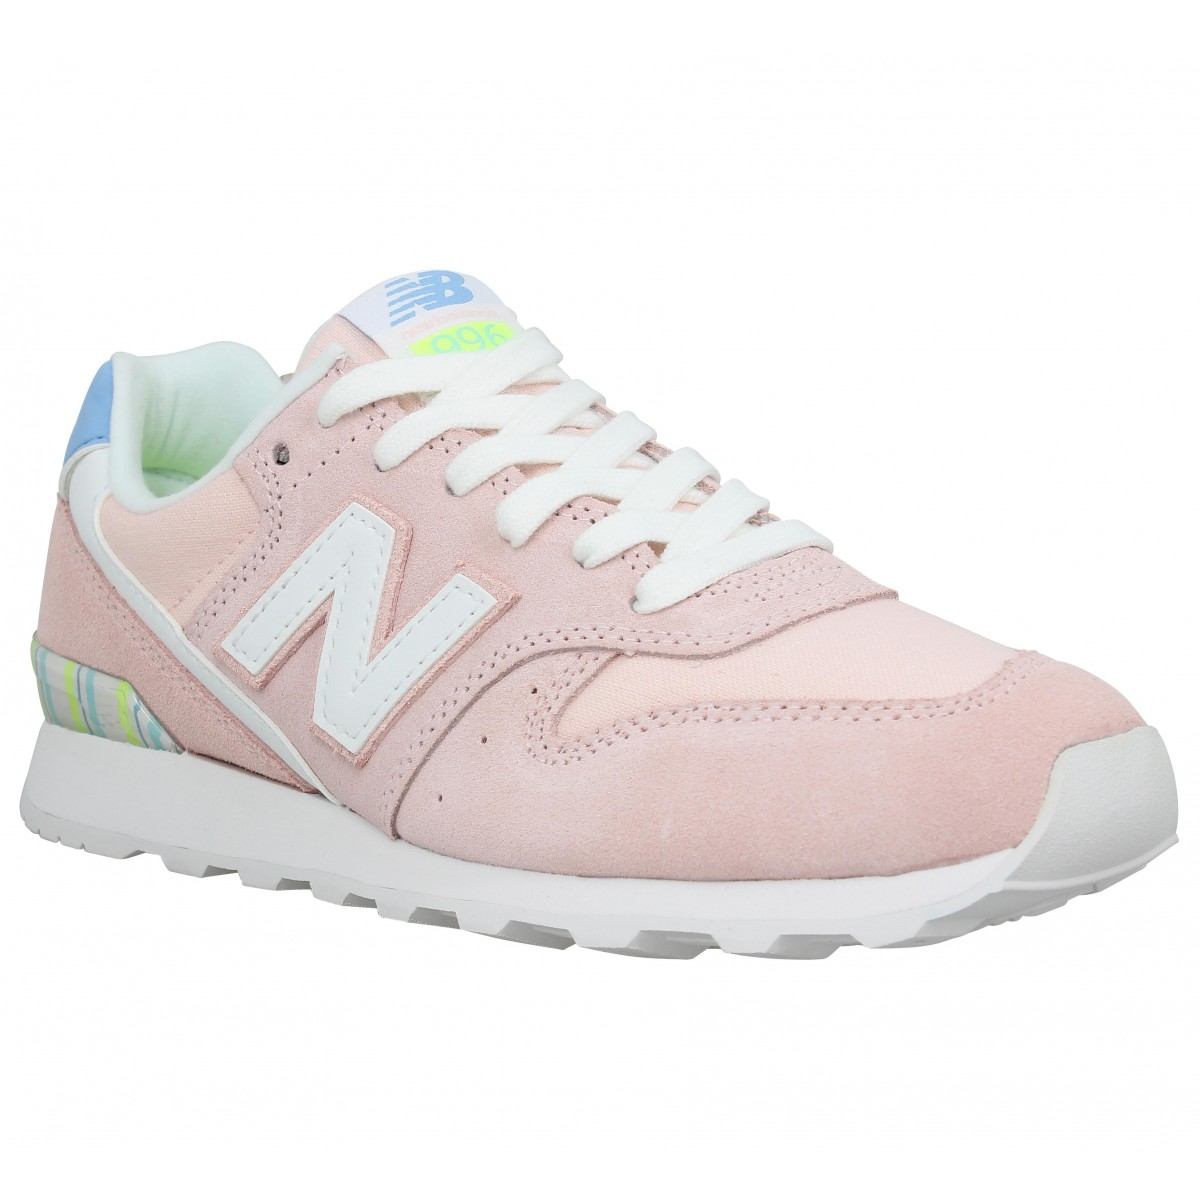 New Balance Marque 996 Femme-38-rose